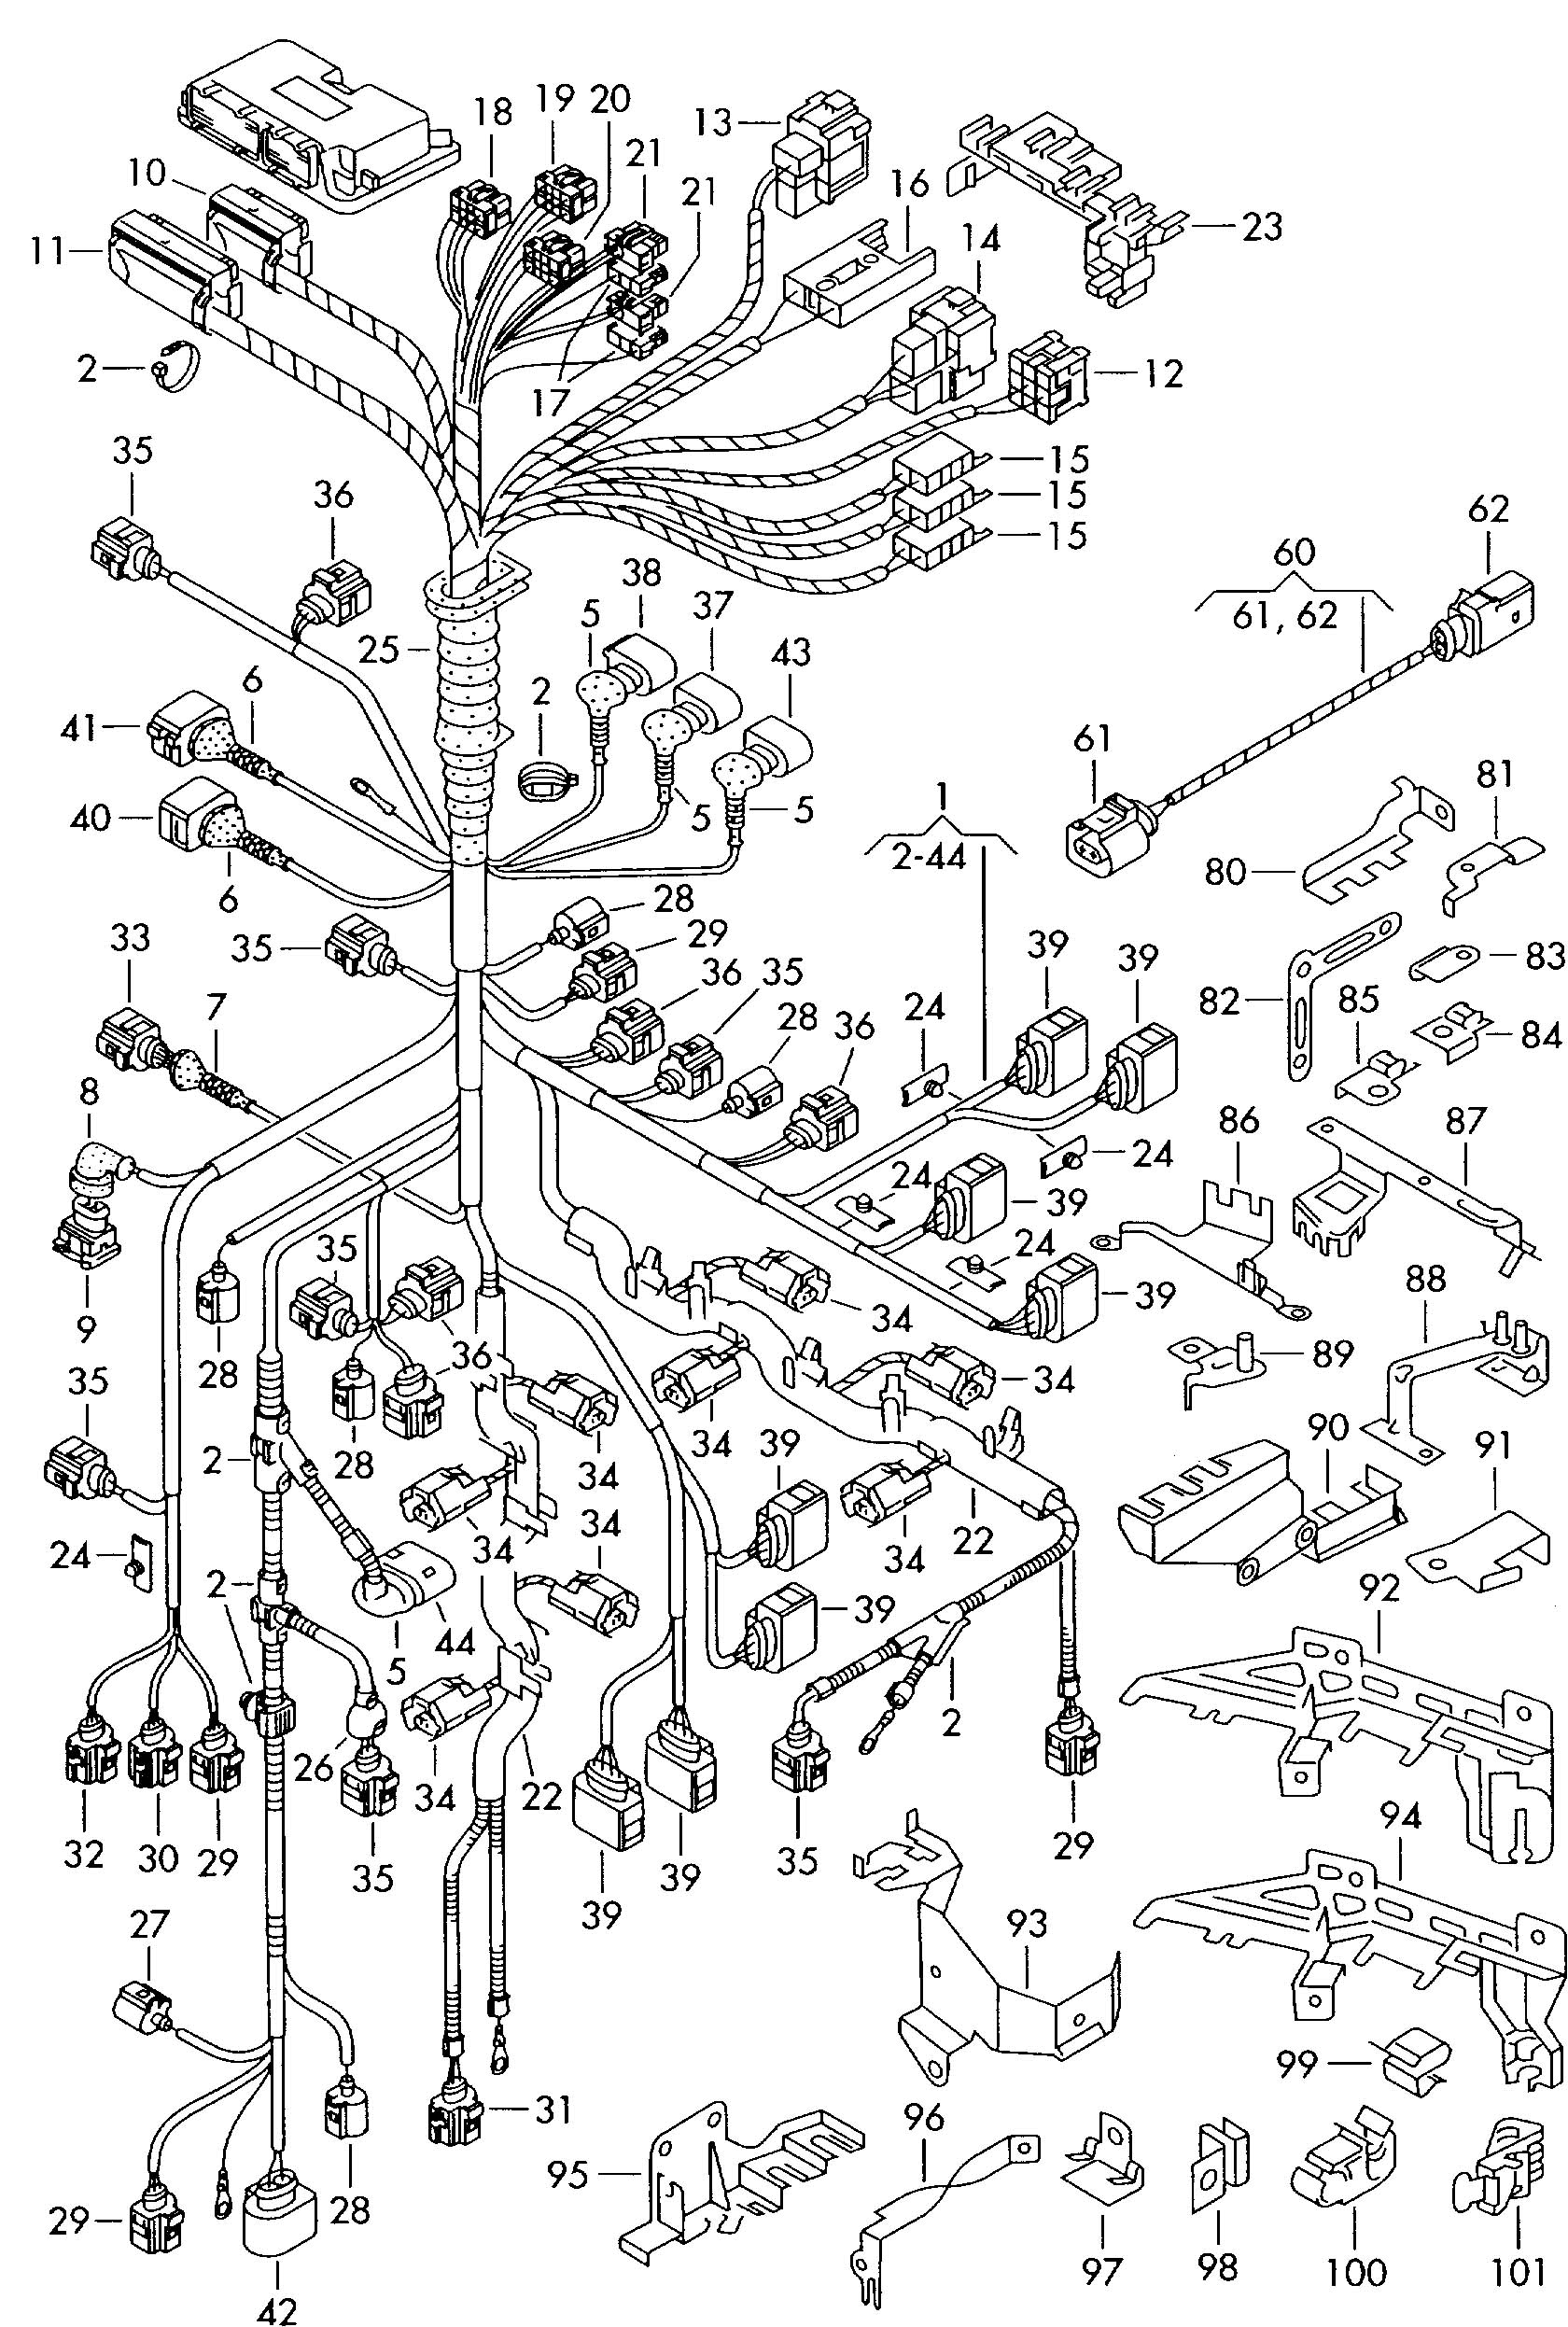 Single parts which do not adapter wiring harness harness